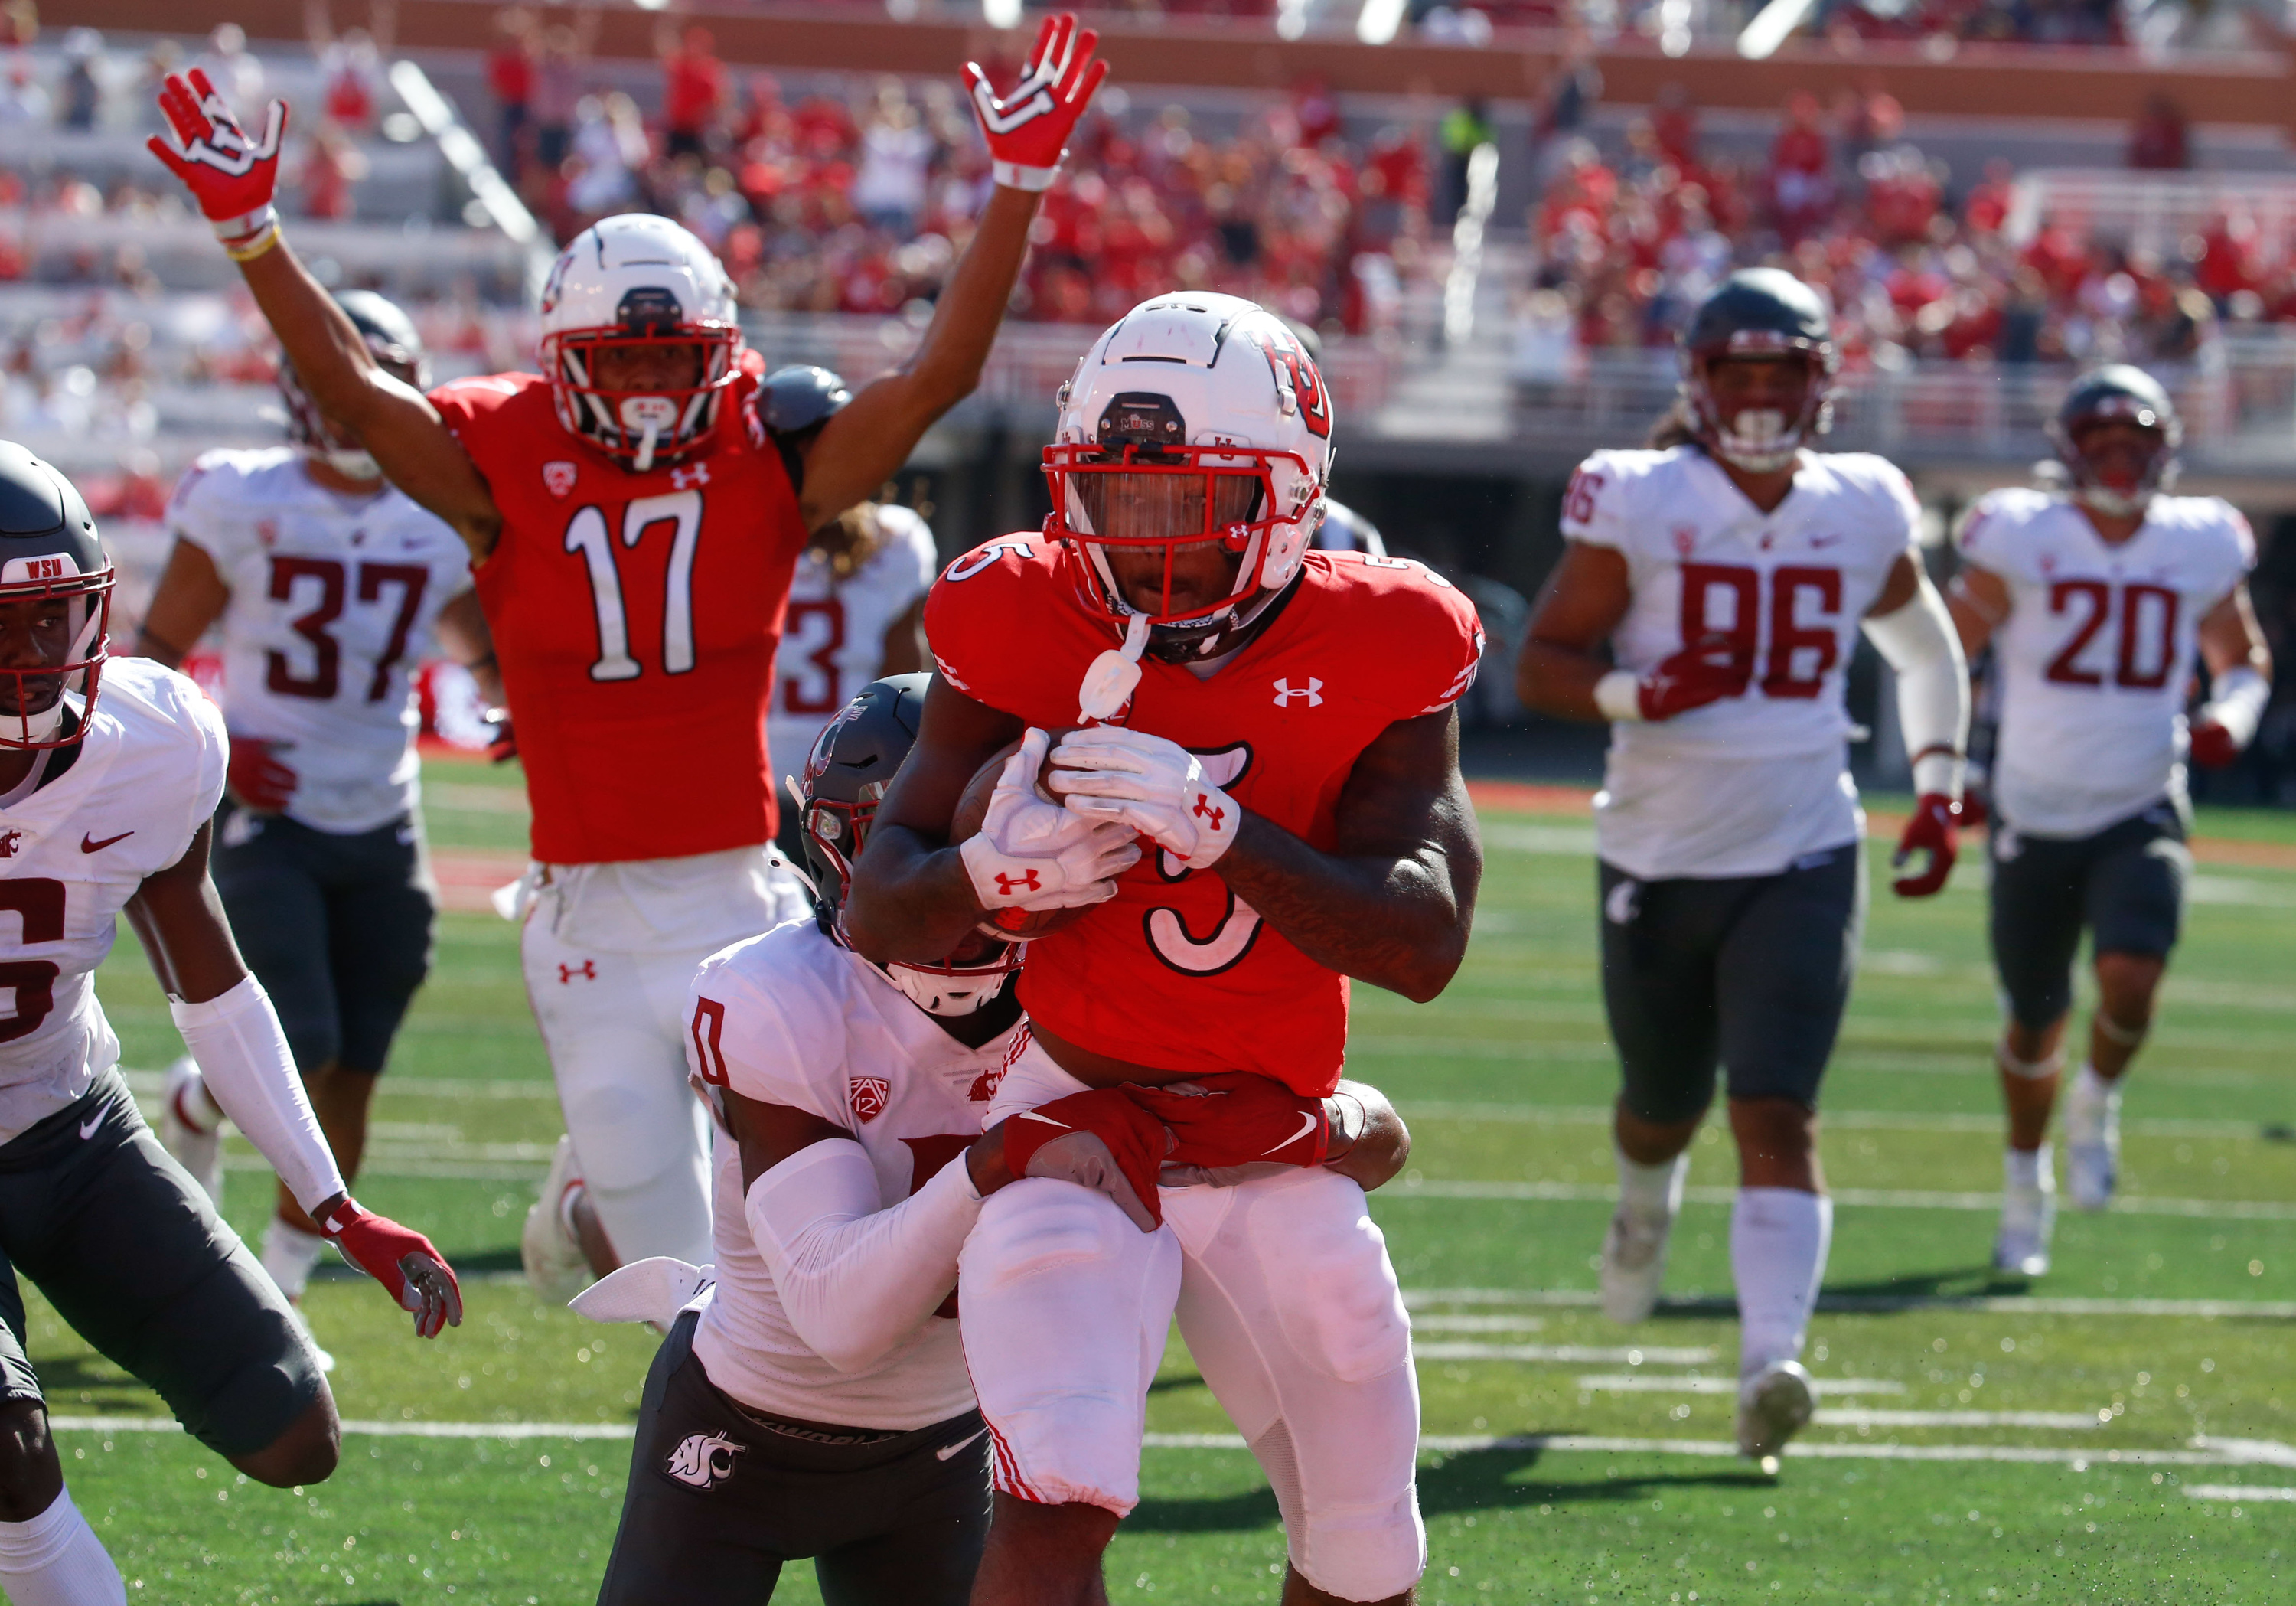 Utah running back TJ Pledger, center, gets tackled by Washington State defensive back Jaylen Watson as others celebrates during touchdown of an NCAA college football game at Rice-Eccles Stadium on Saturday, Sept. 25, 2021 in Salt Lake City. Utah won the game 24-13.